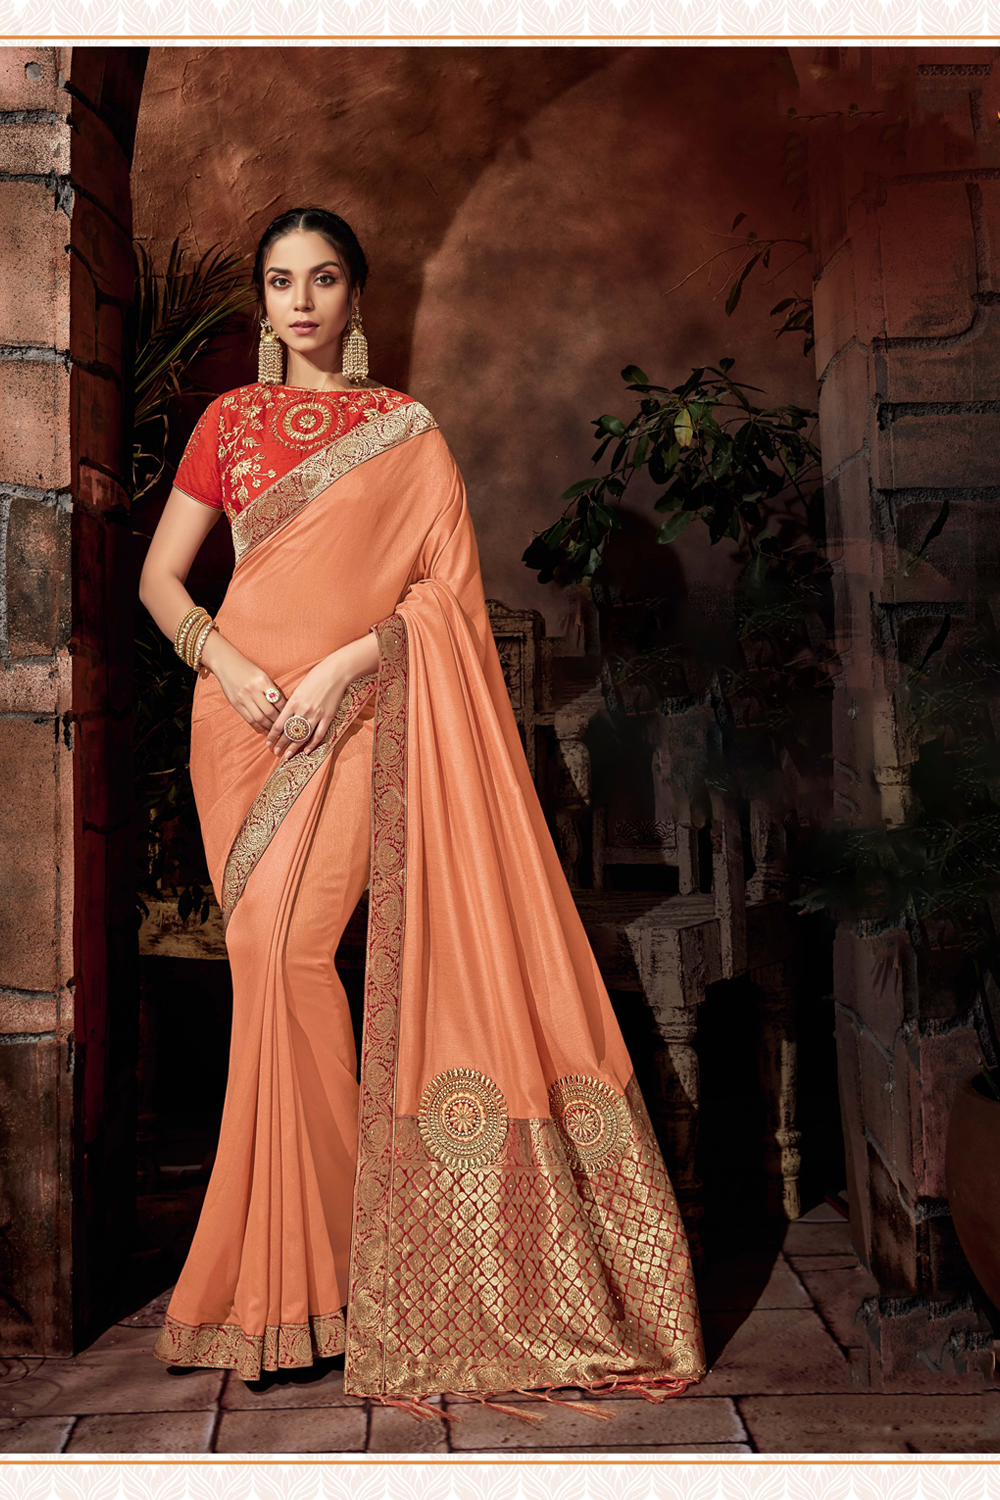 Intricate motifs and beautiful trims and details peach saree